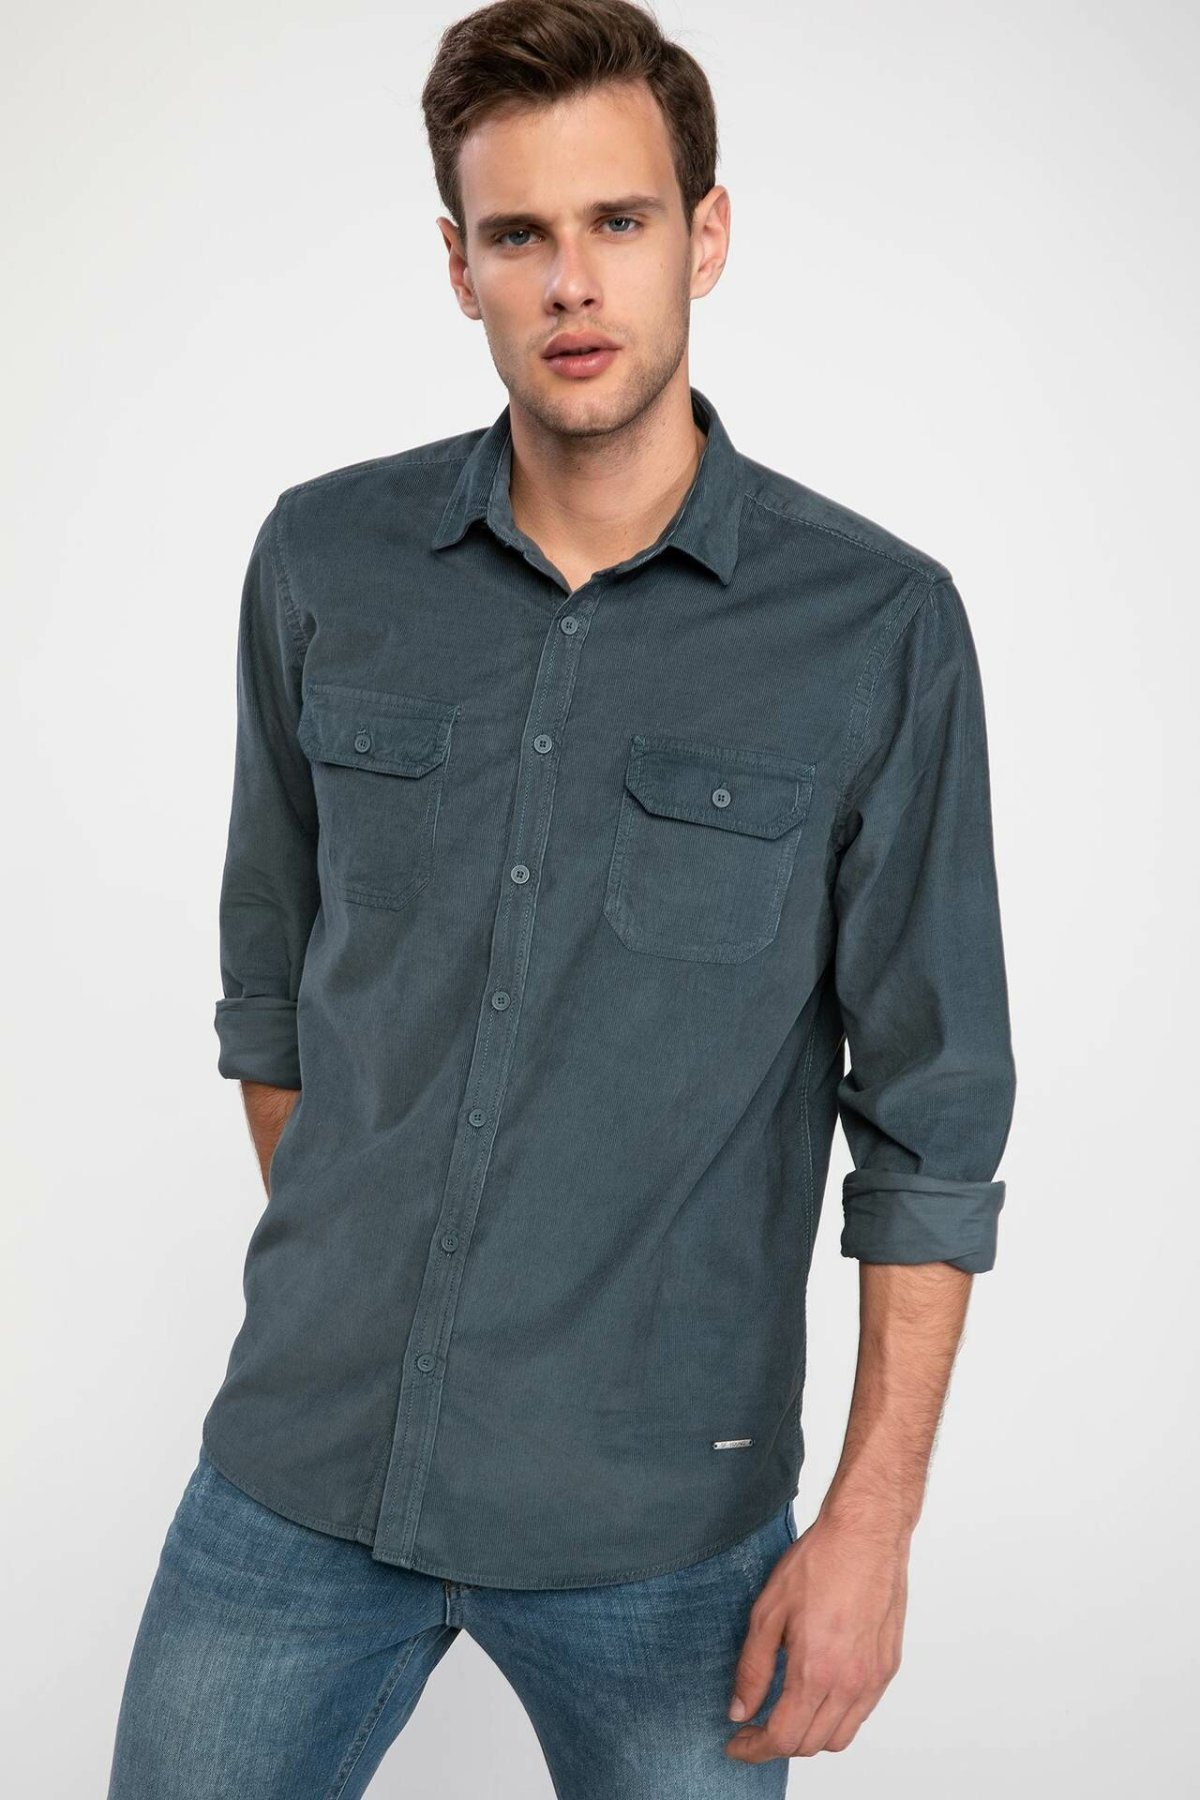 DeFacto Man Long Sleeve Solid Color Autumn Spring Shirt Casual Smart Shirts Pockets Decors High Quality-I9292AZ18AU